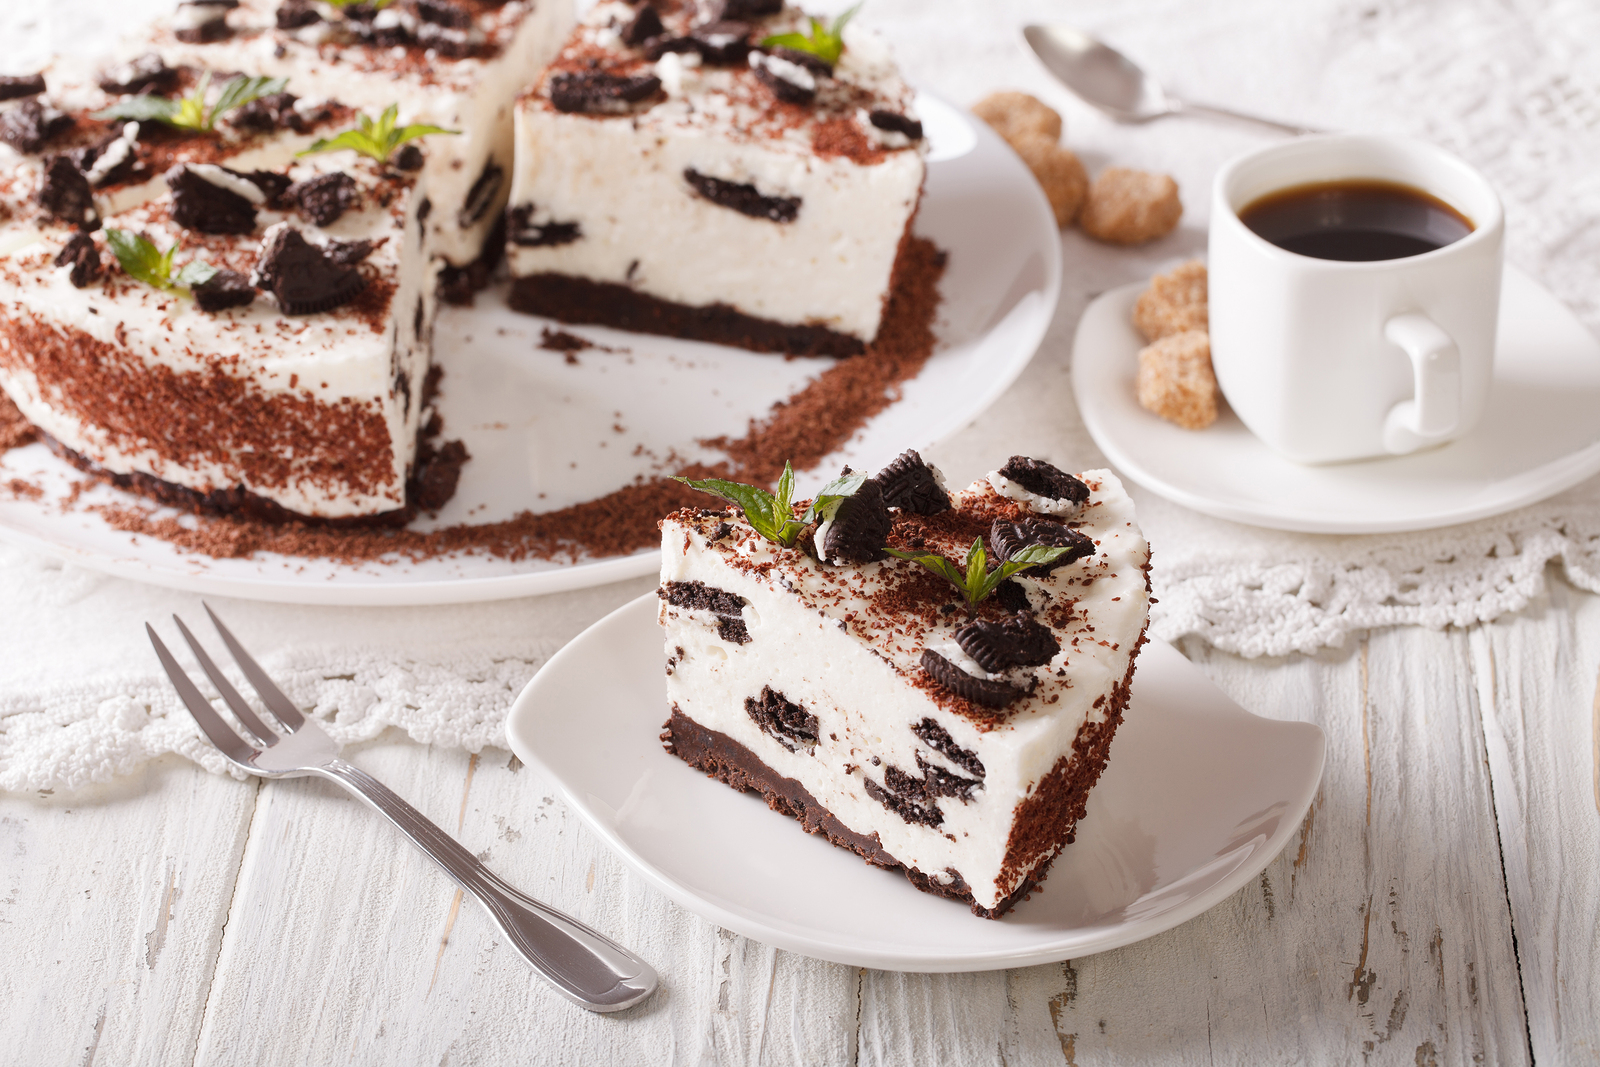 cheesecake de chocolate blanco cocido